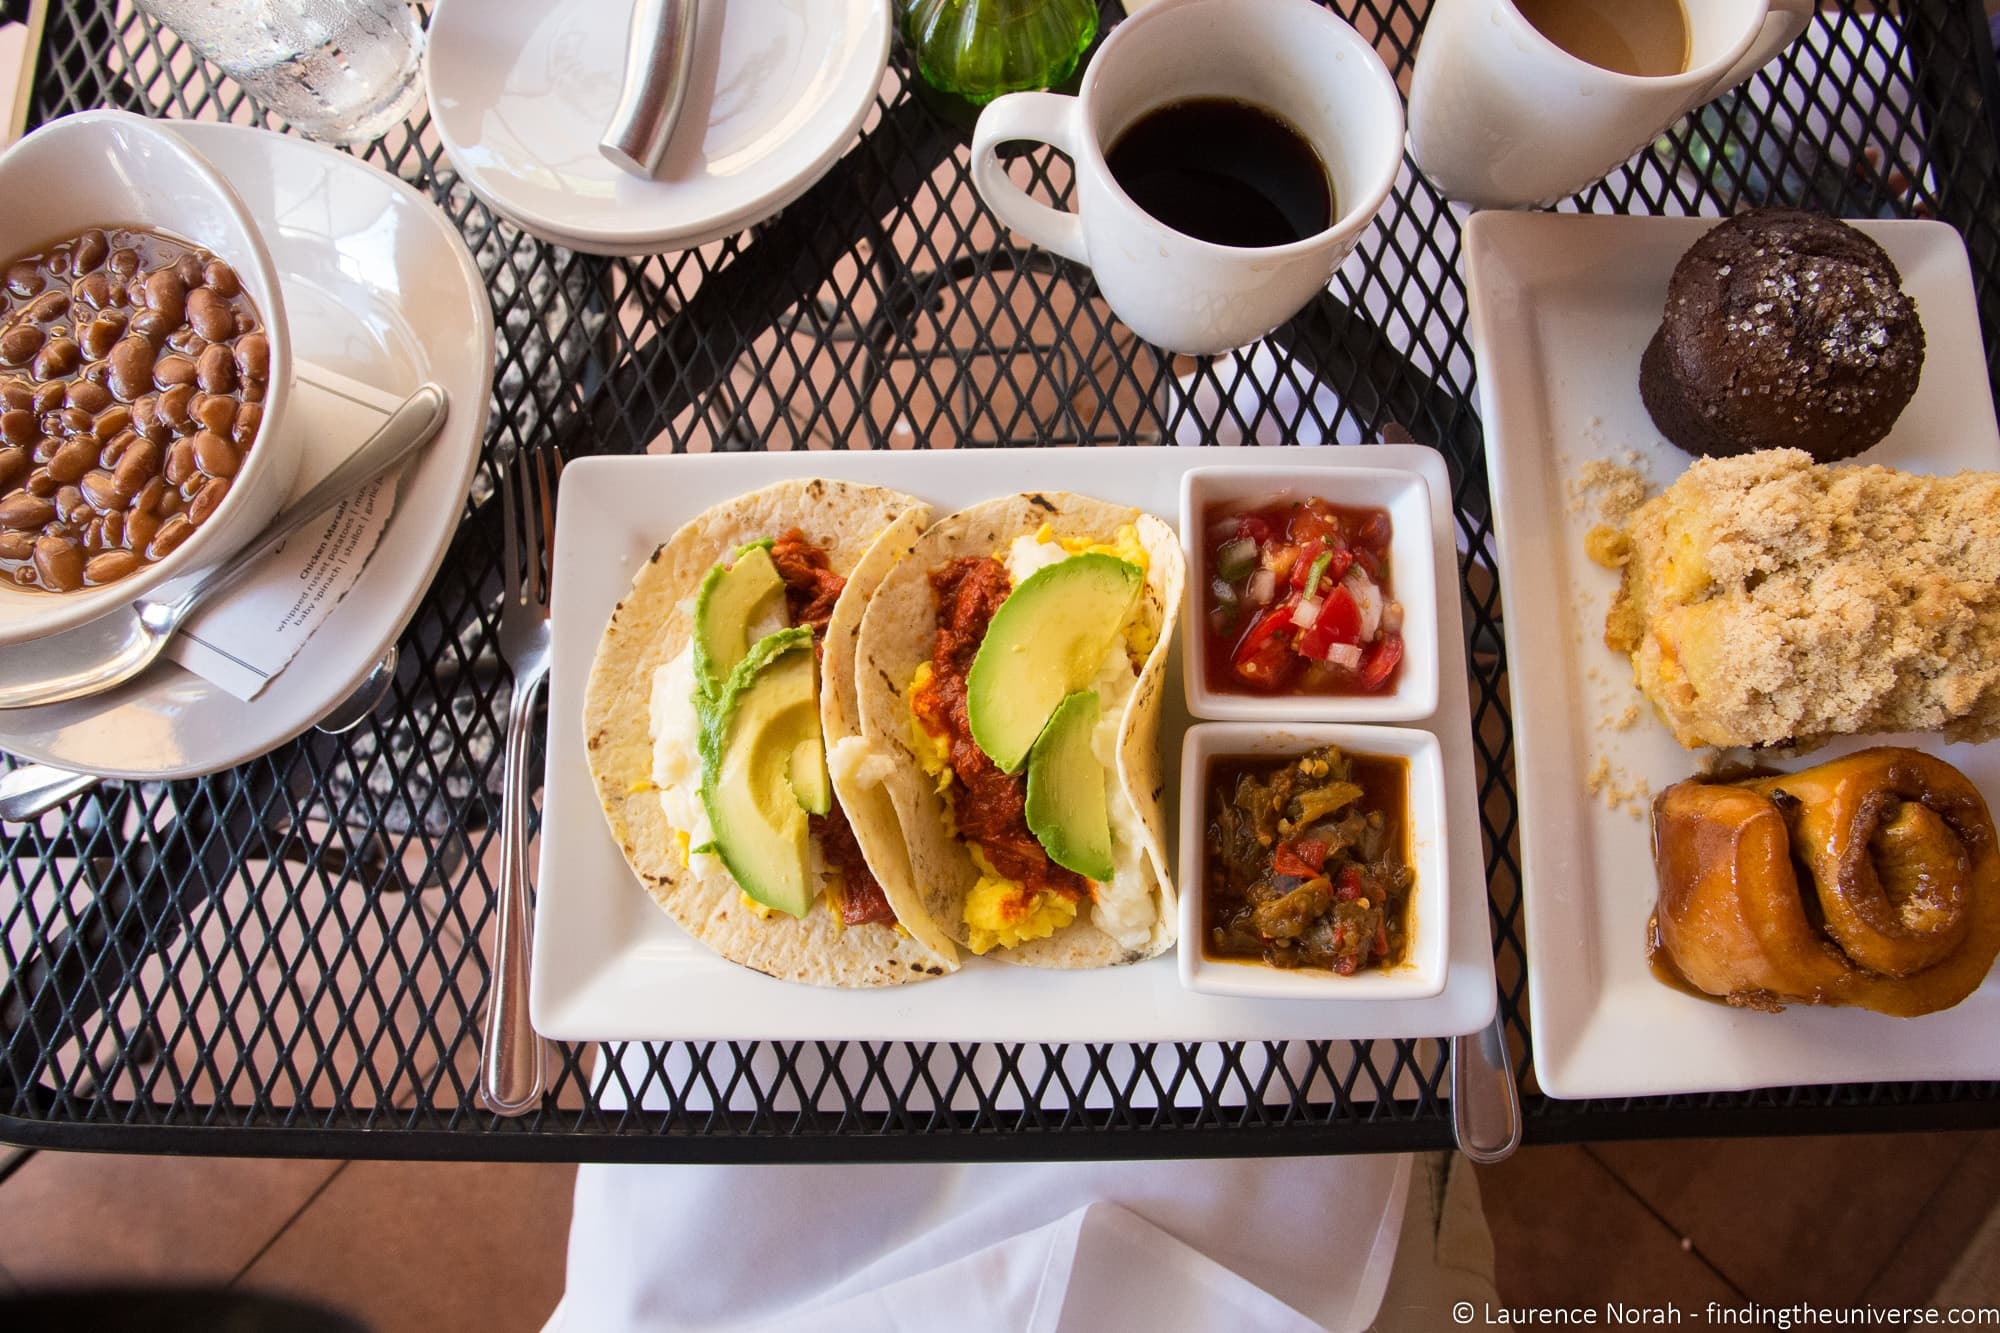 The Best Restaurants in Albuquerque: From Diners to Fine